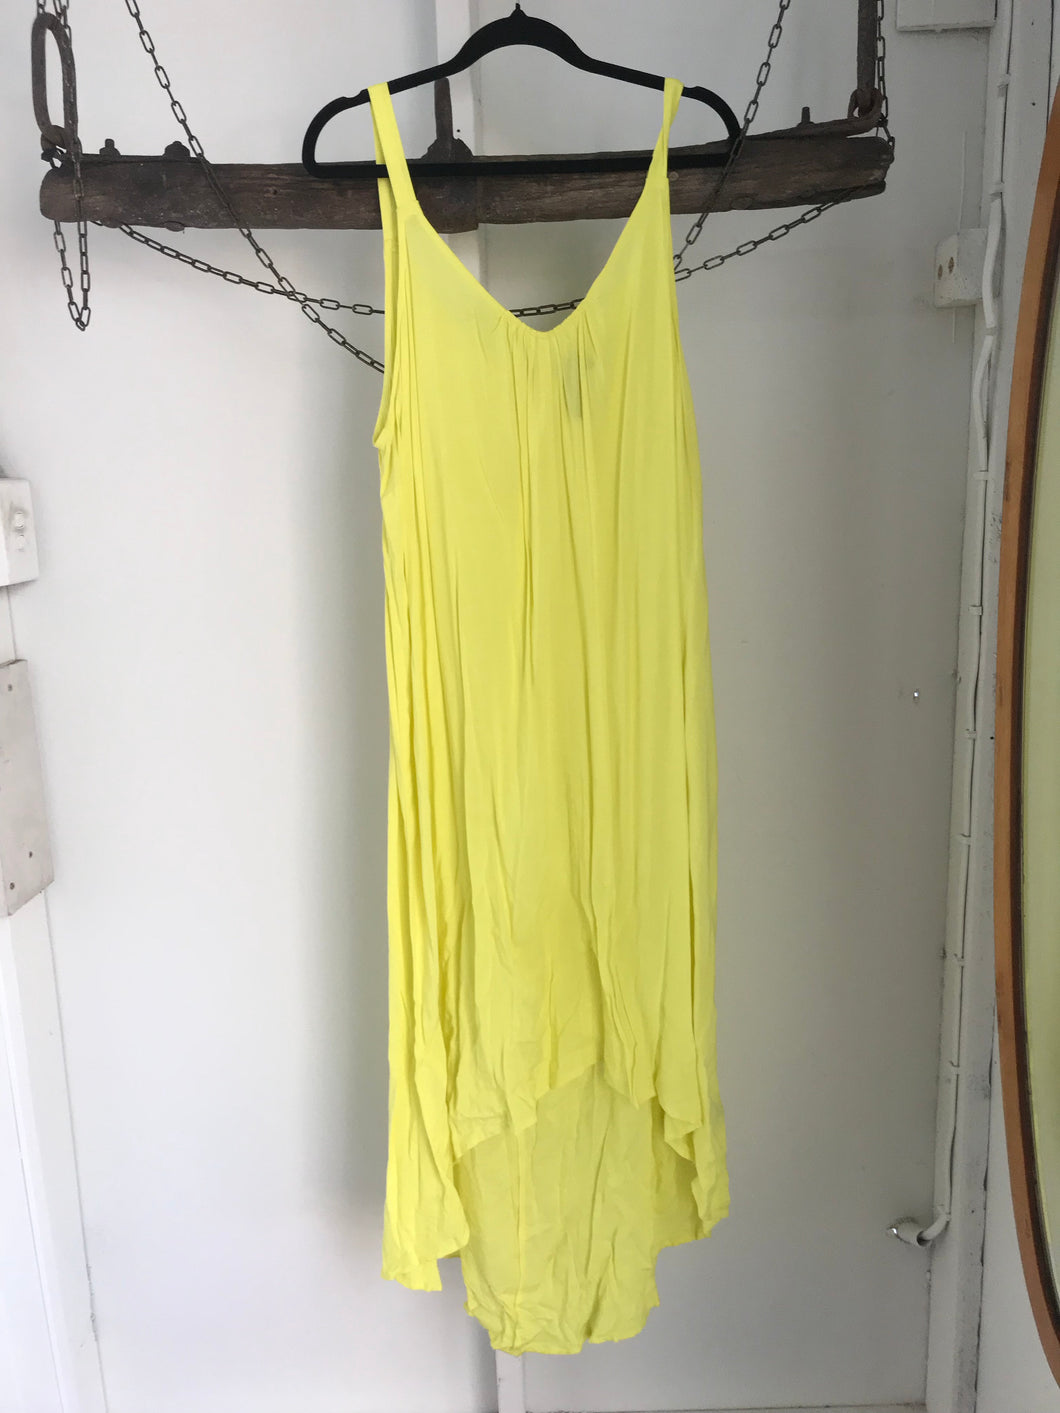 Taking Shape yellow slip beach dress Size S (estimated 16)